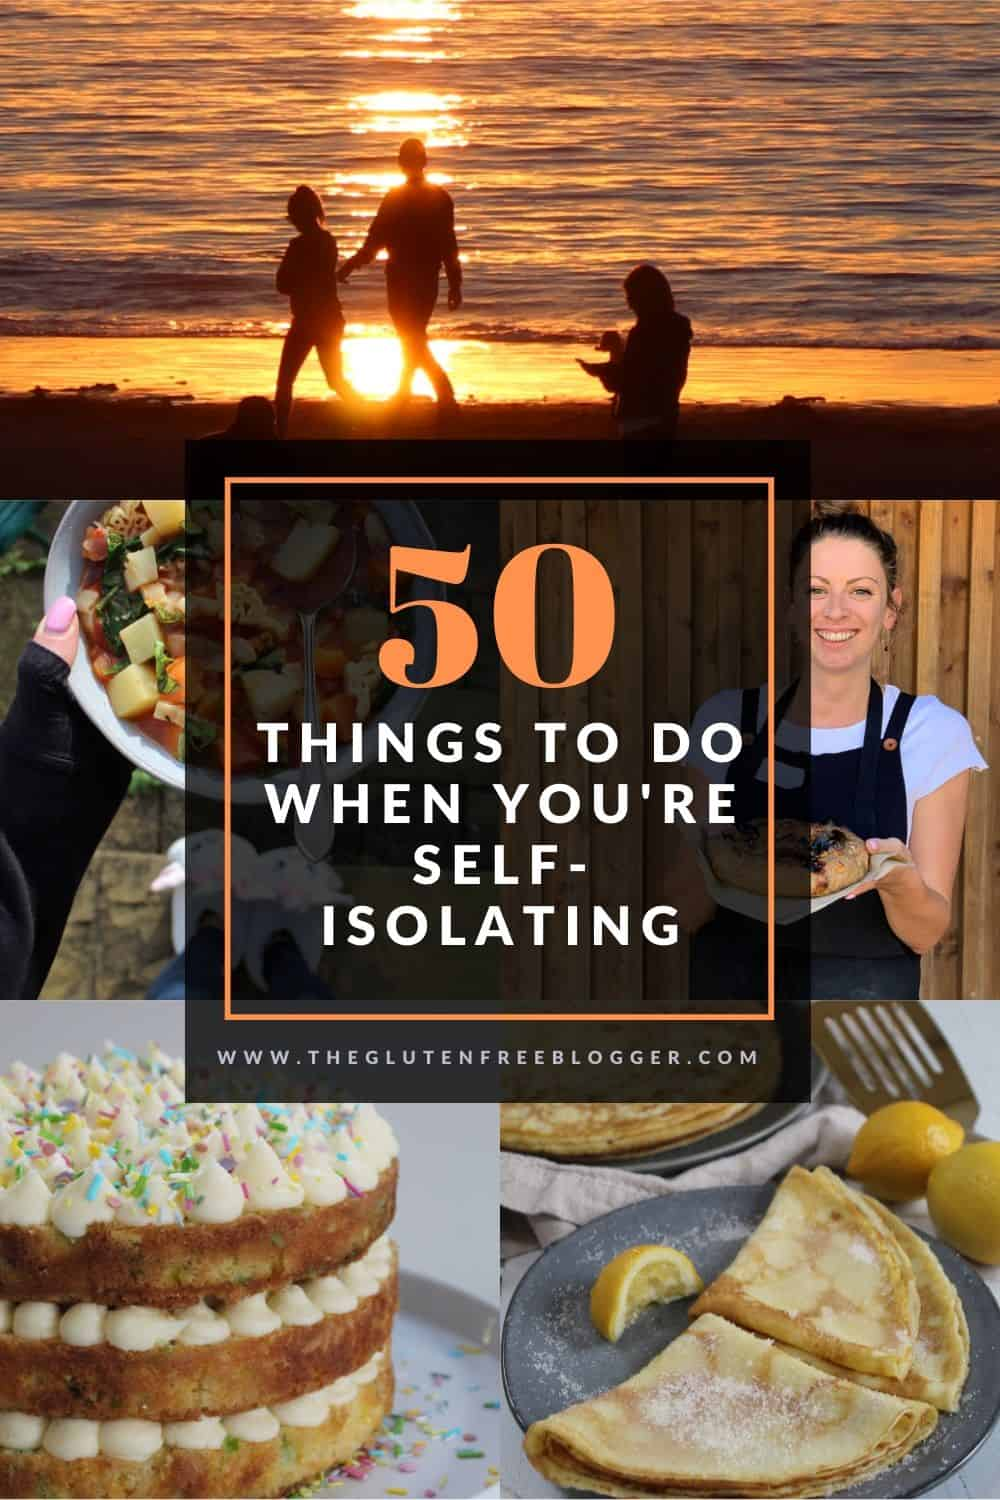 50 things to do if you're self isolating (2)